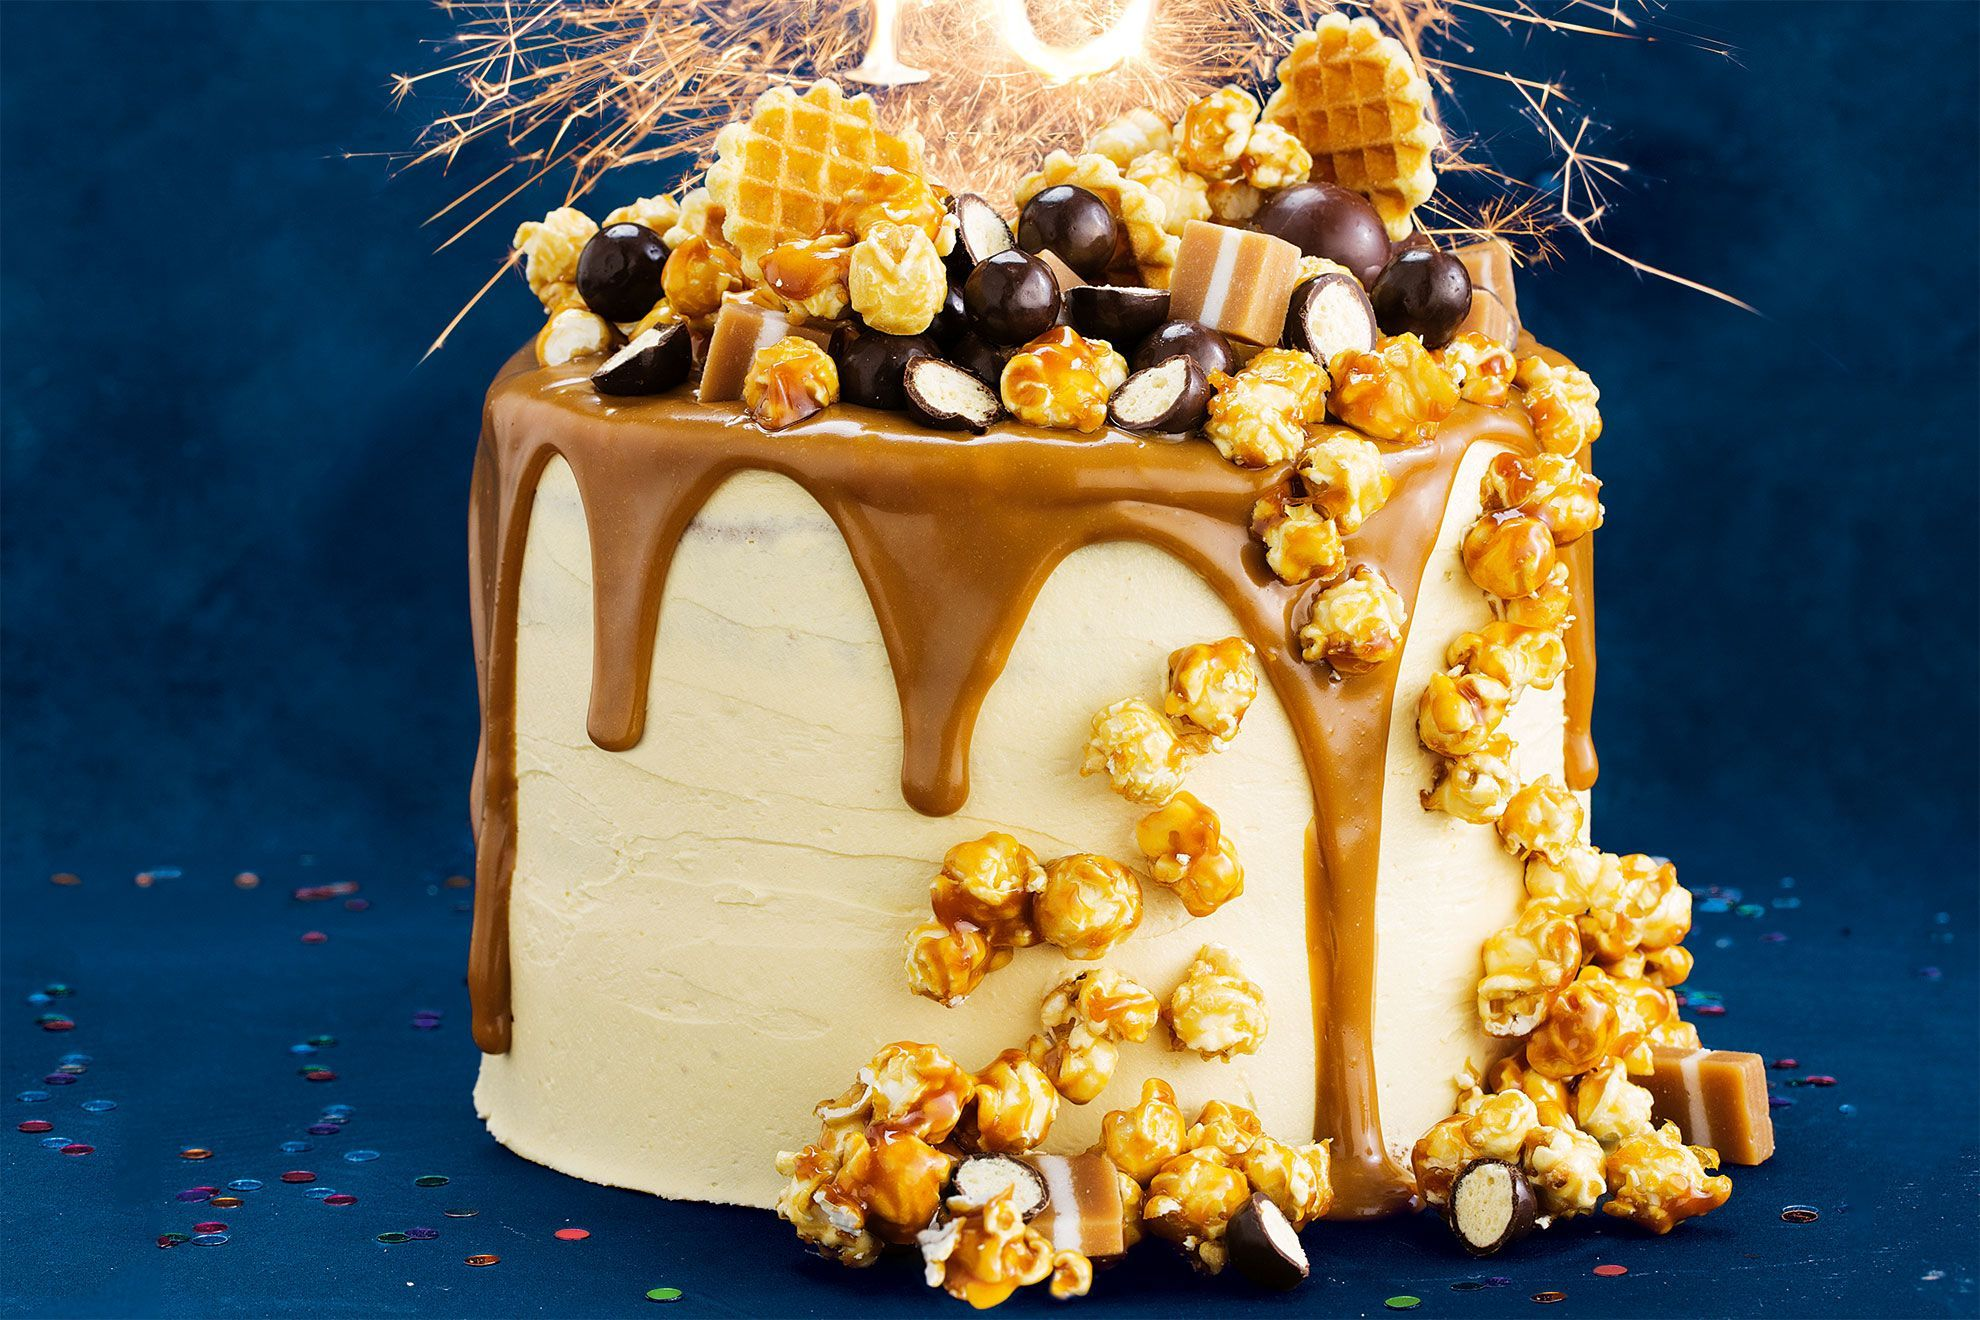 21st Birthday Cake Ideas For Guys And Girls